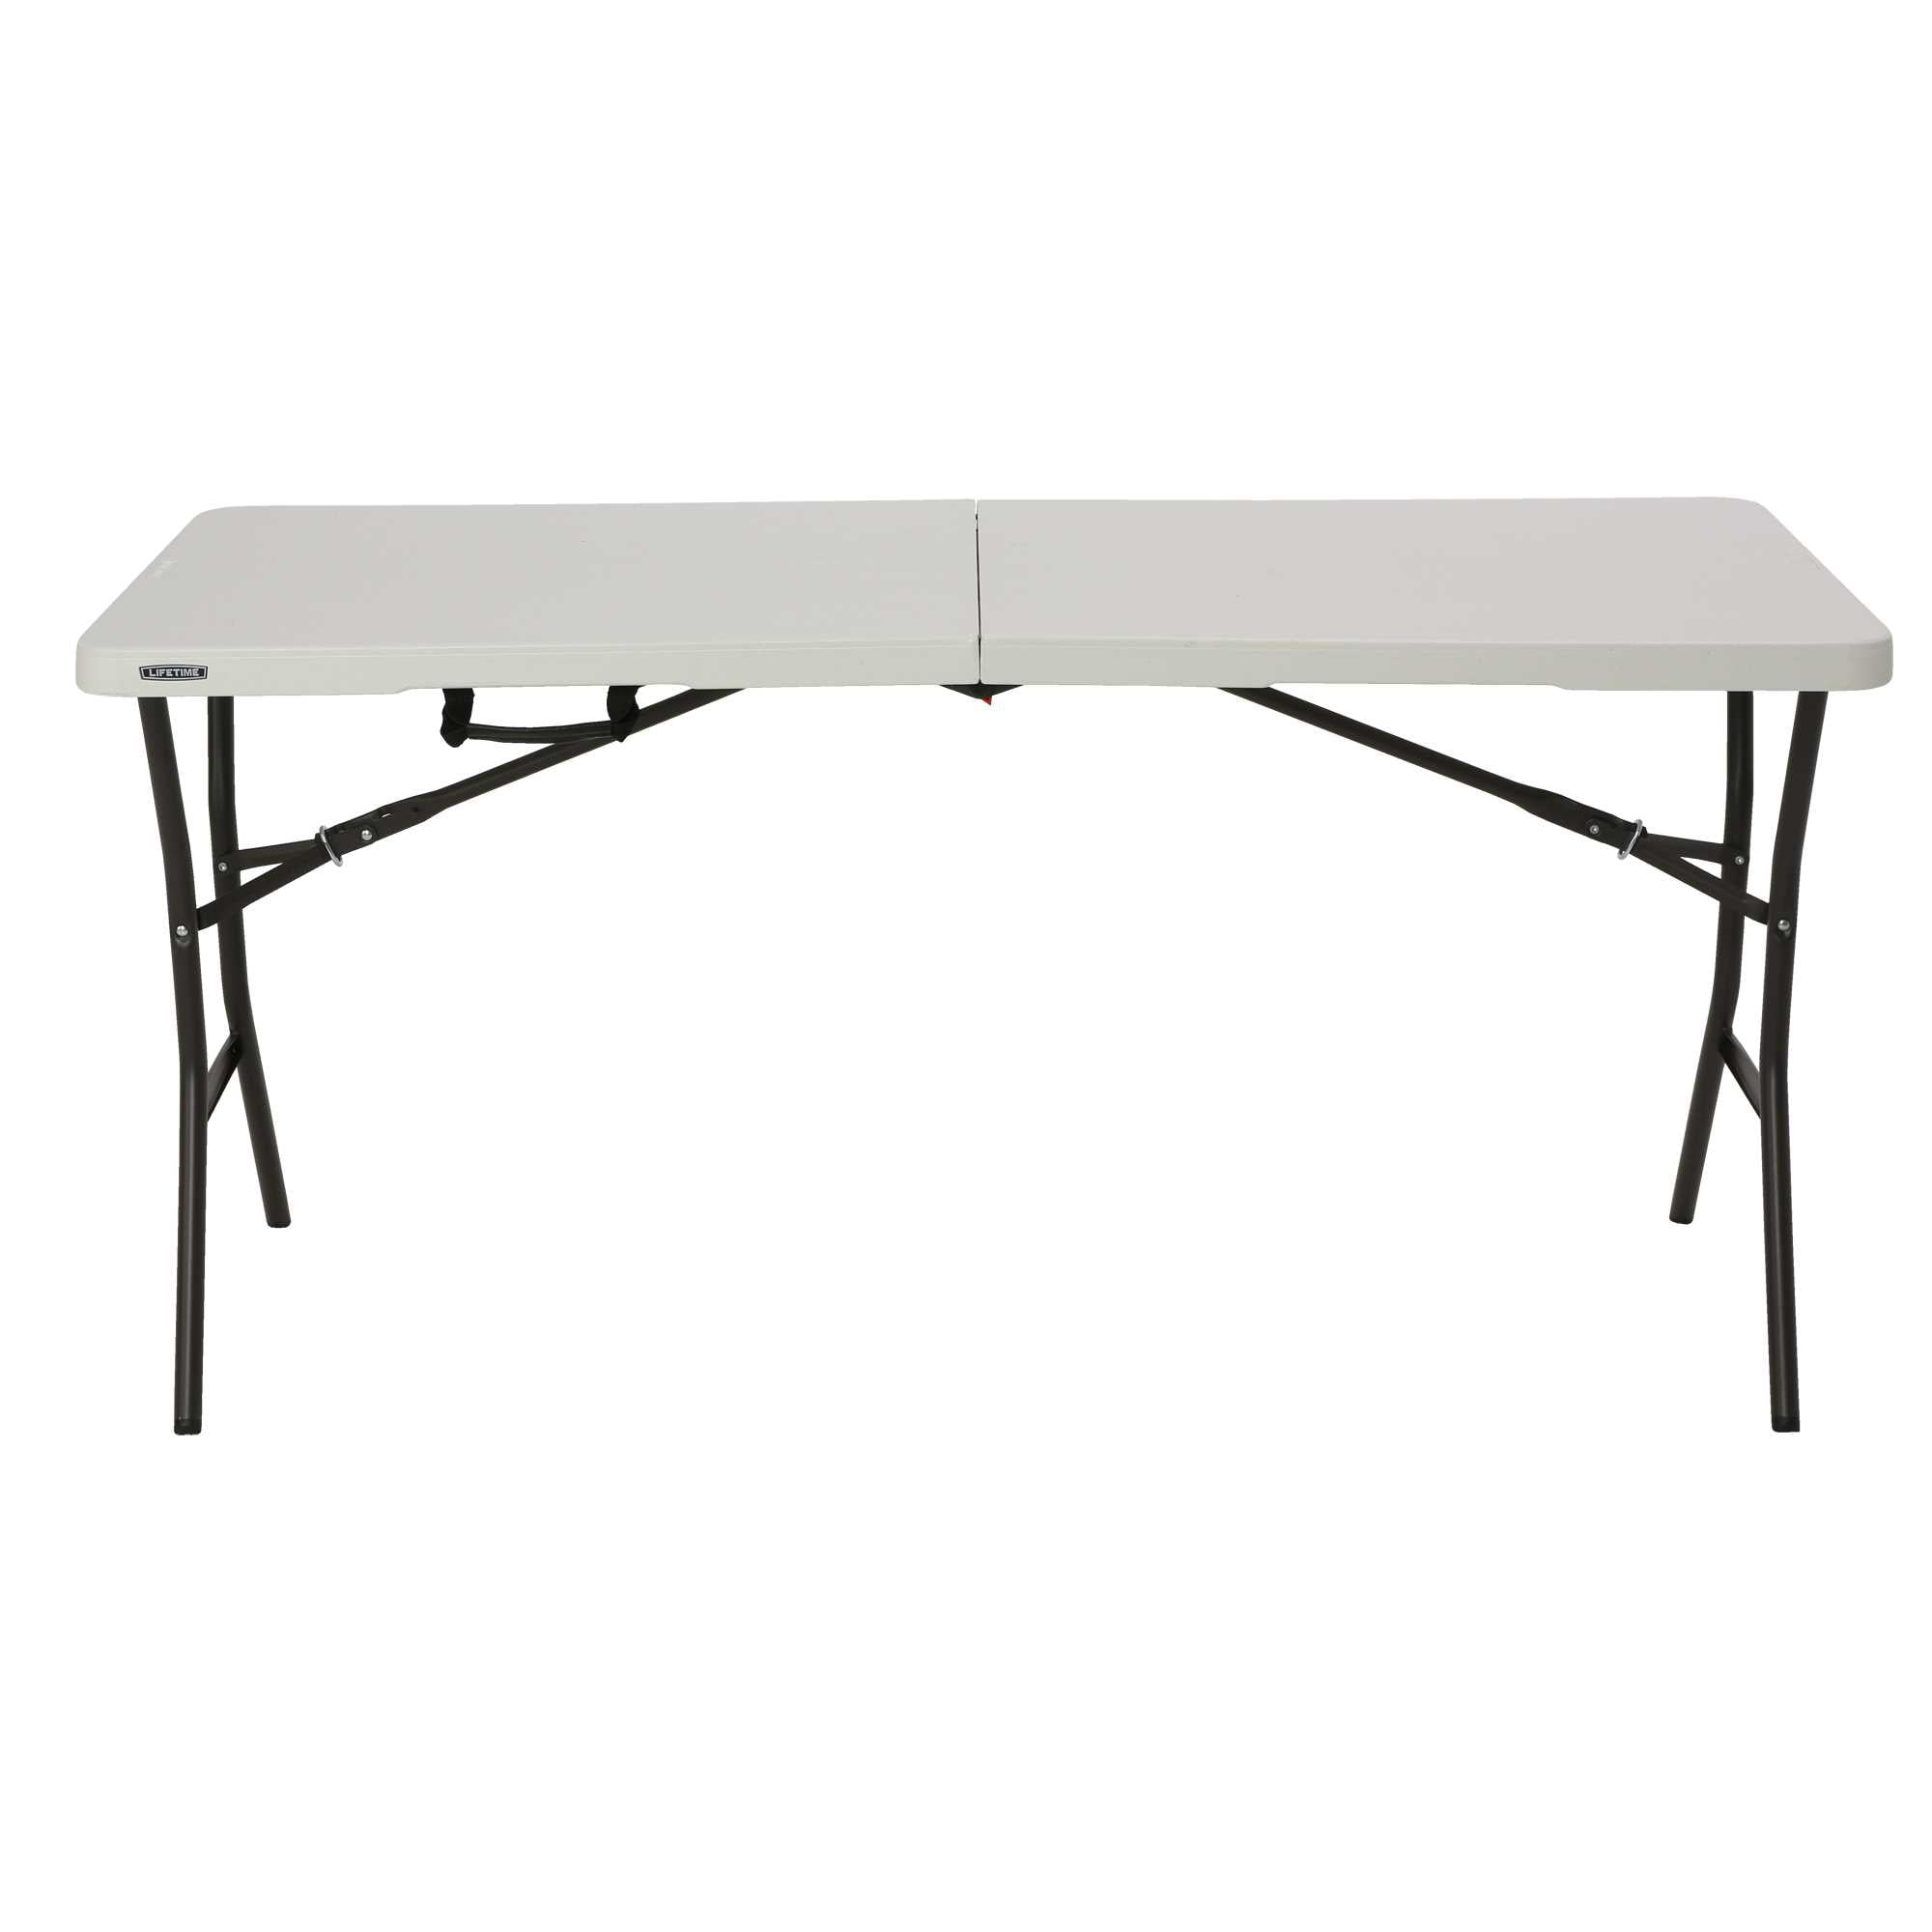 Lifetime 5 Essential Fold In Half Table Home Furniture Office Portable Party